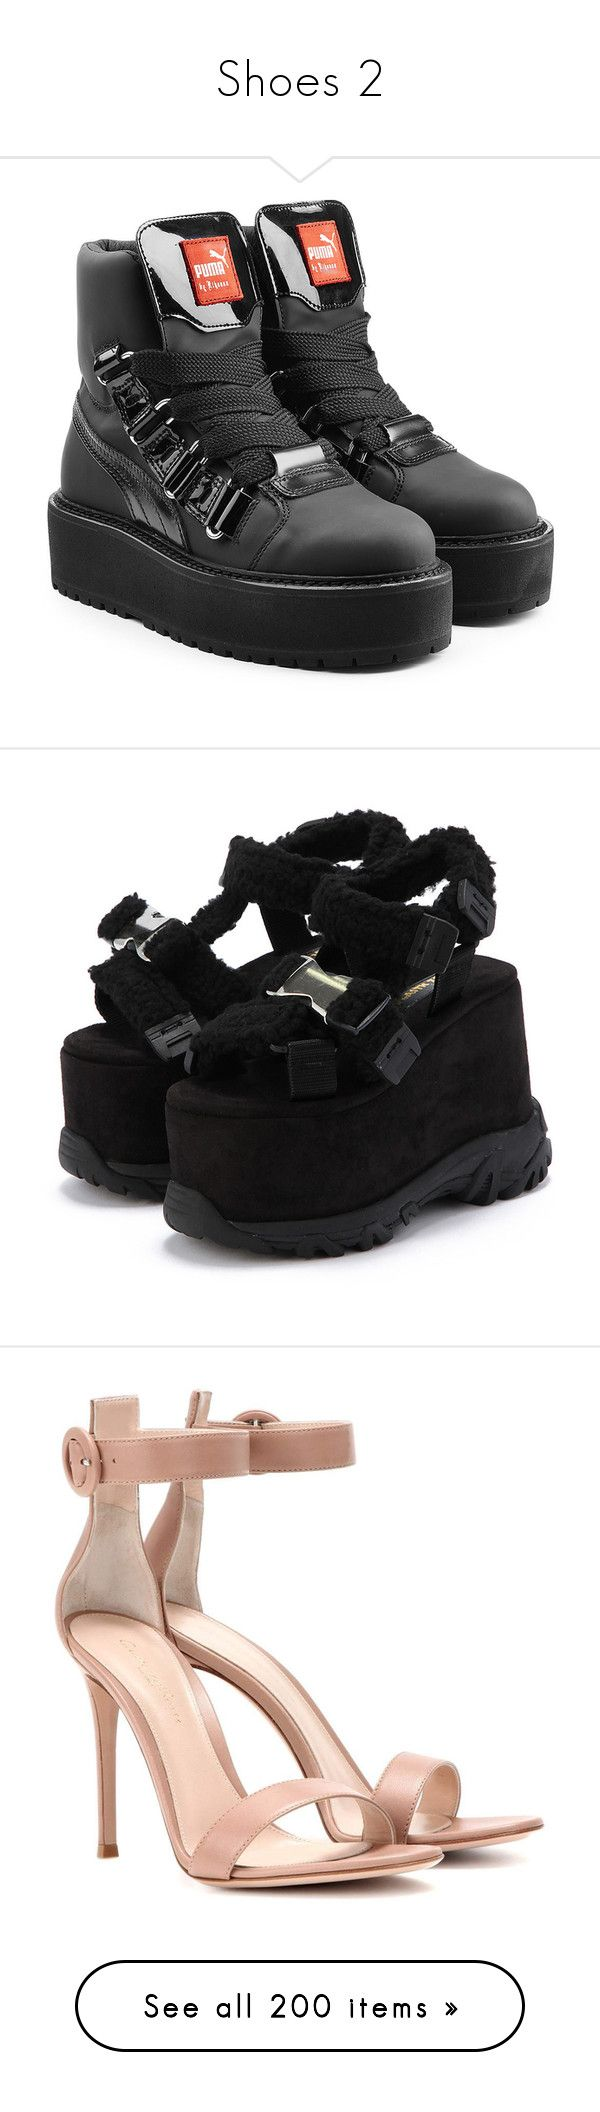 """""""Shoes 2"""" by lutizzlle ❤ liked on Polyvore featuring shoes, boots, ankle booties, black, black booties, laced up boots, black laced booties, puma boots, leather ankle booties and sandals"""